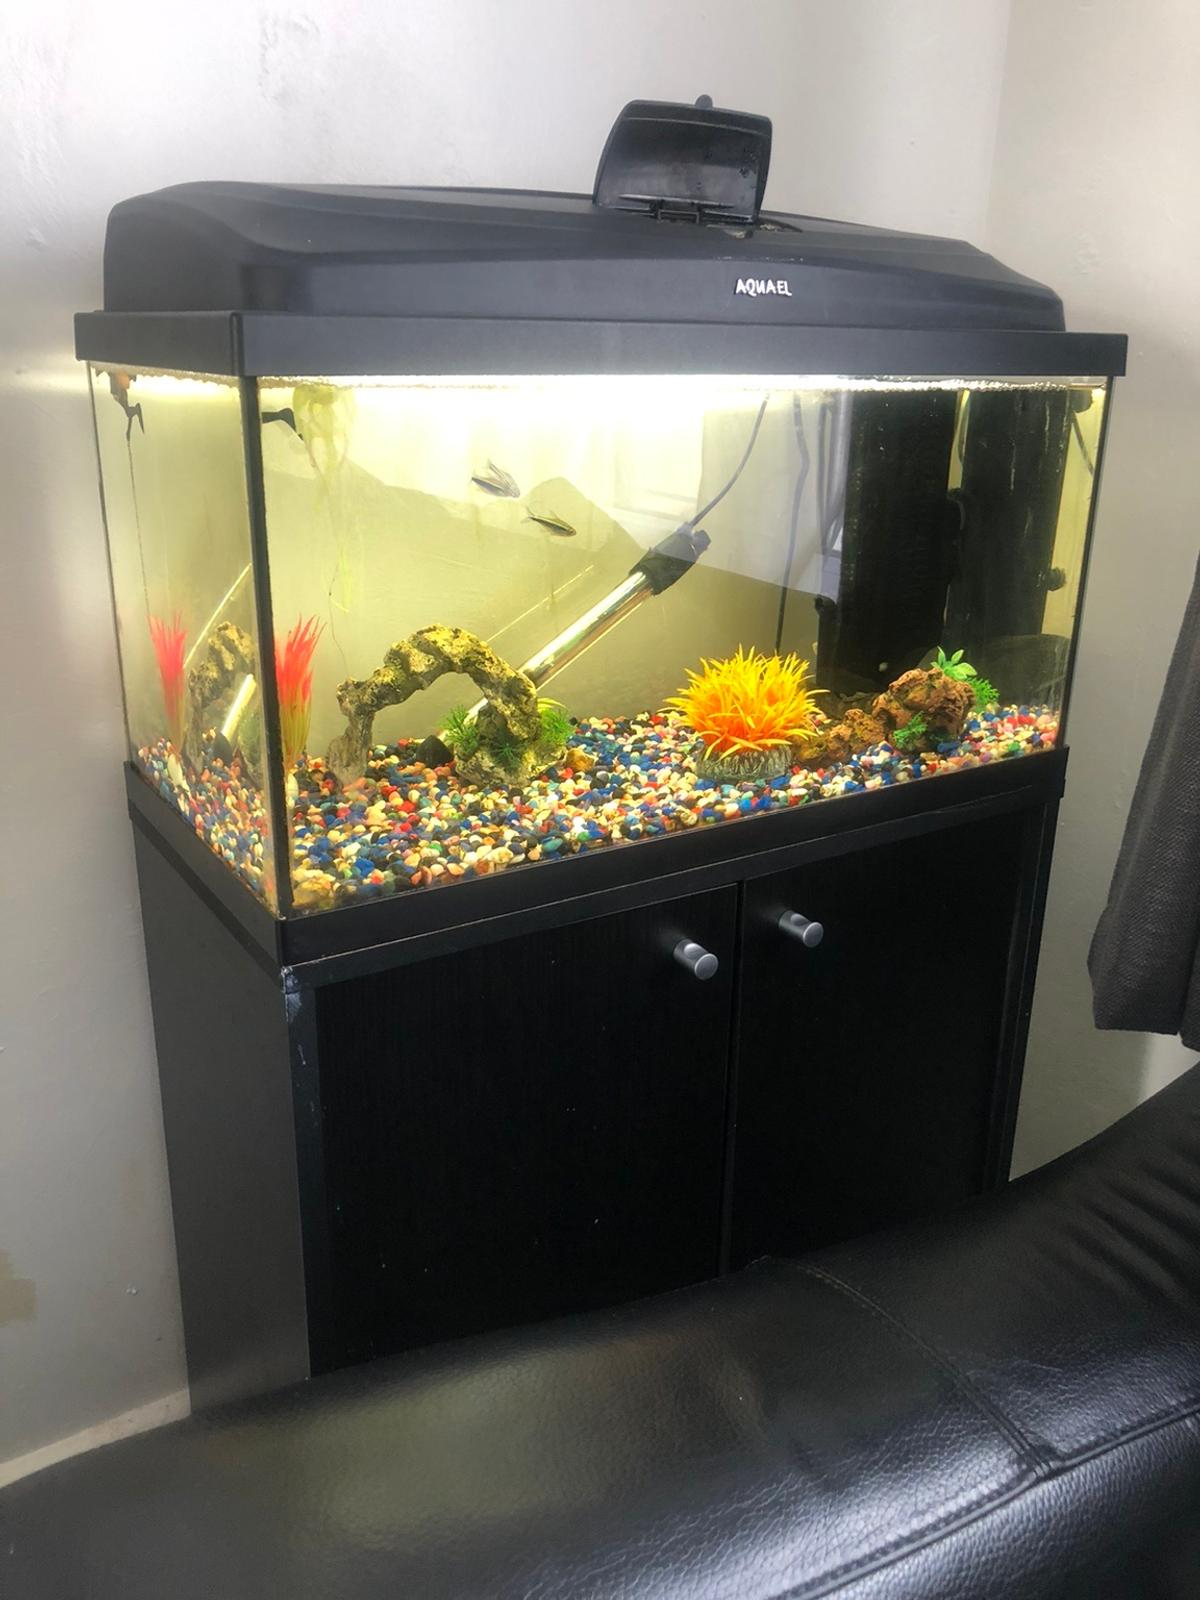 Aquael fish tank lovely condition well looked after complete with stand NO FISH OR GRAVEL  Dimensions of TANK length 61cm x height 41cm depth 31cm Dimensions of STAND are length 61cm x height 66cm x depth 31cm  Approximately 60-70 litres  Also comes with Fluval u4 internal filter ( new pads and media) Heater Ornaments Air stone and pump Magnetic cleaner  ONLY SELLING DUE TO BUYING BIGGER TANK  ANY QUESTIONS PLEASE ASK  £120 ono  Collection only